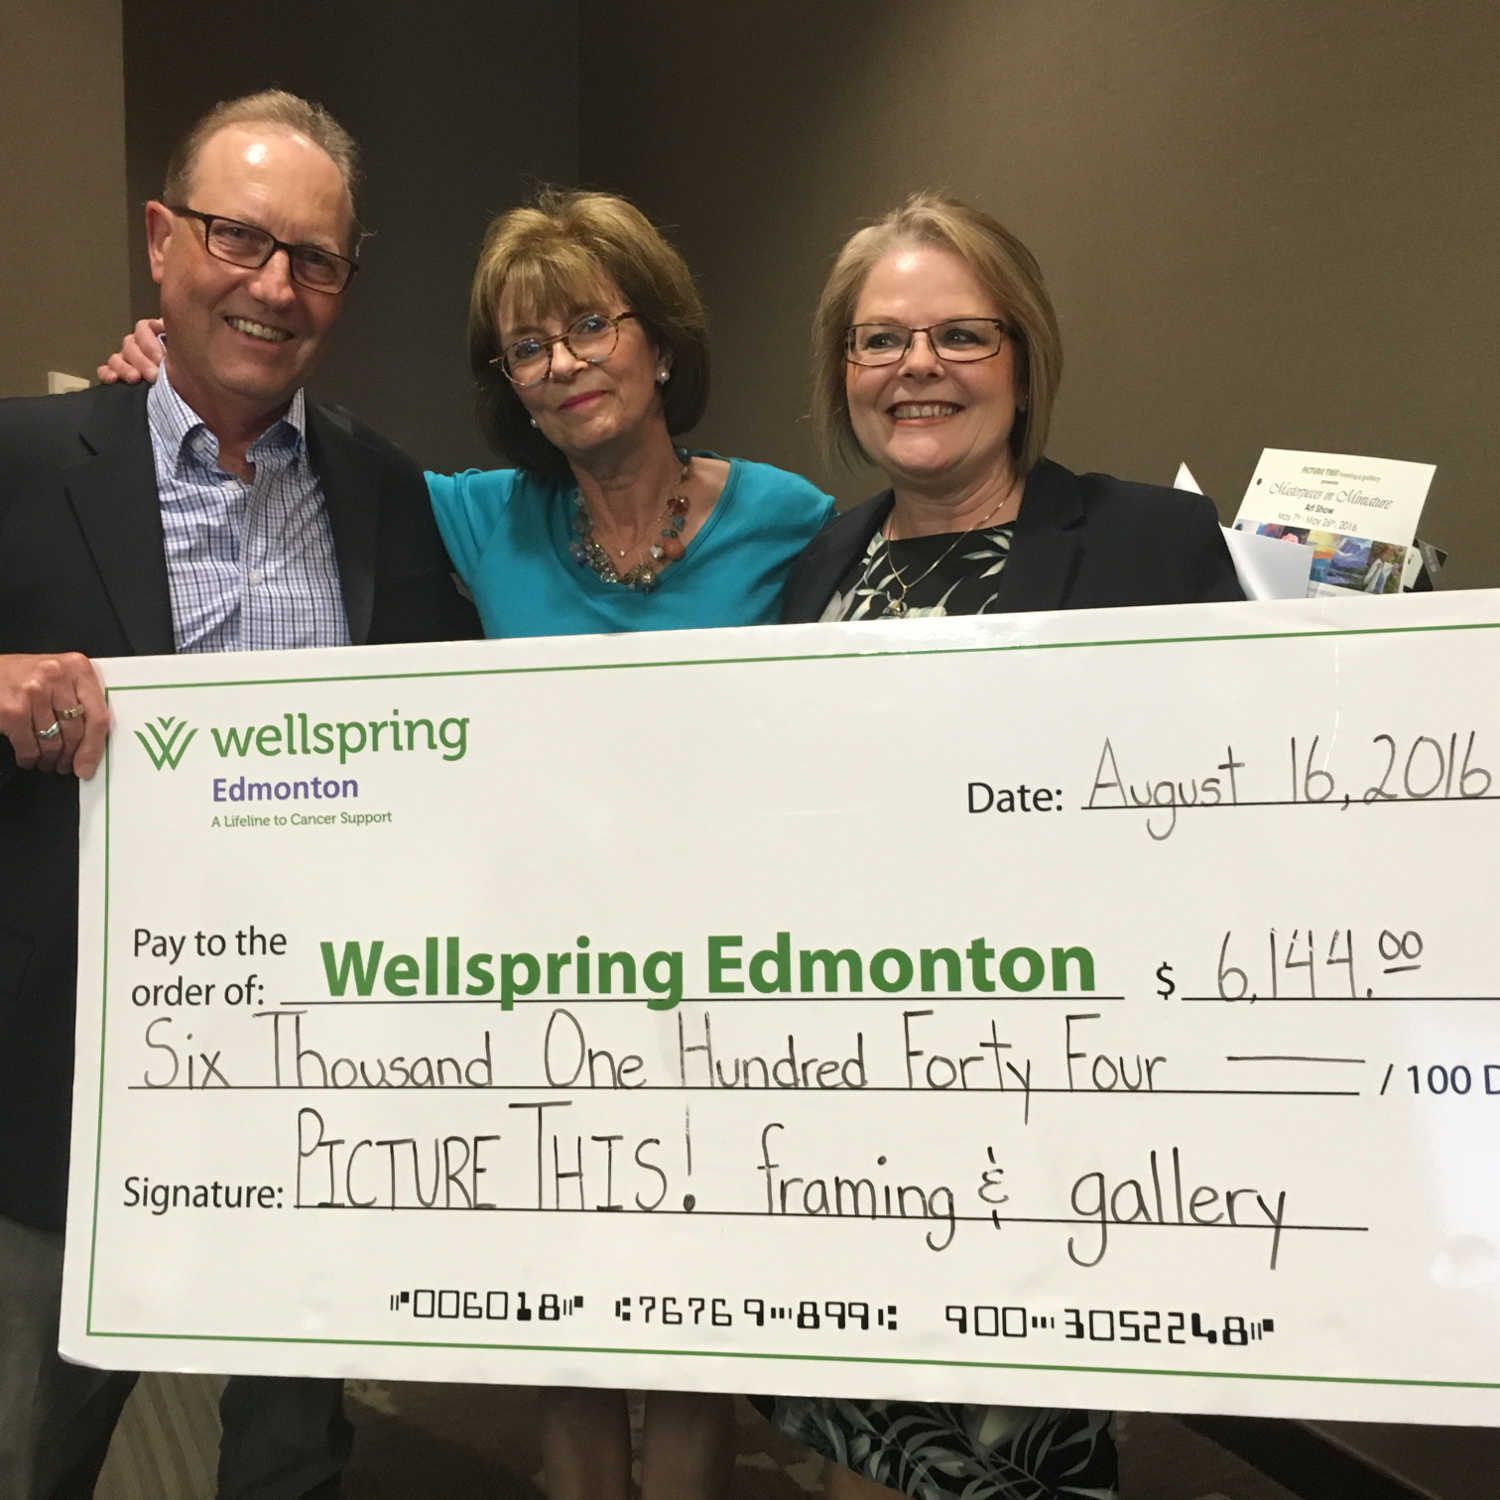 Picture This Presents Donation Cheque to Wellspring Edmonton